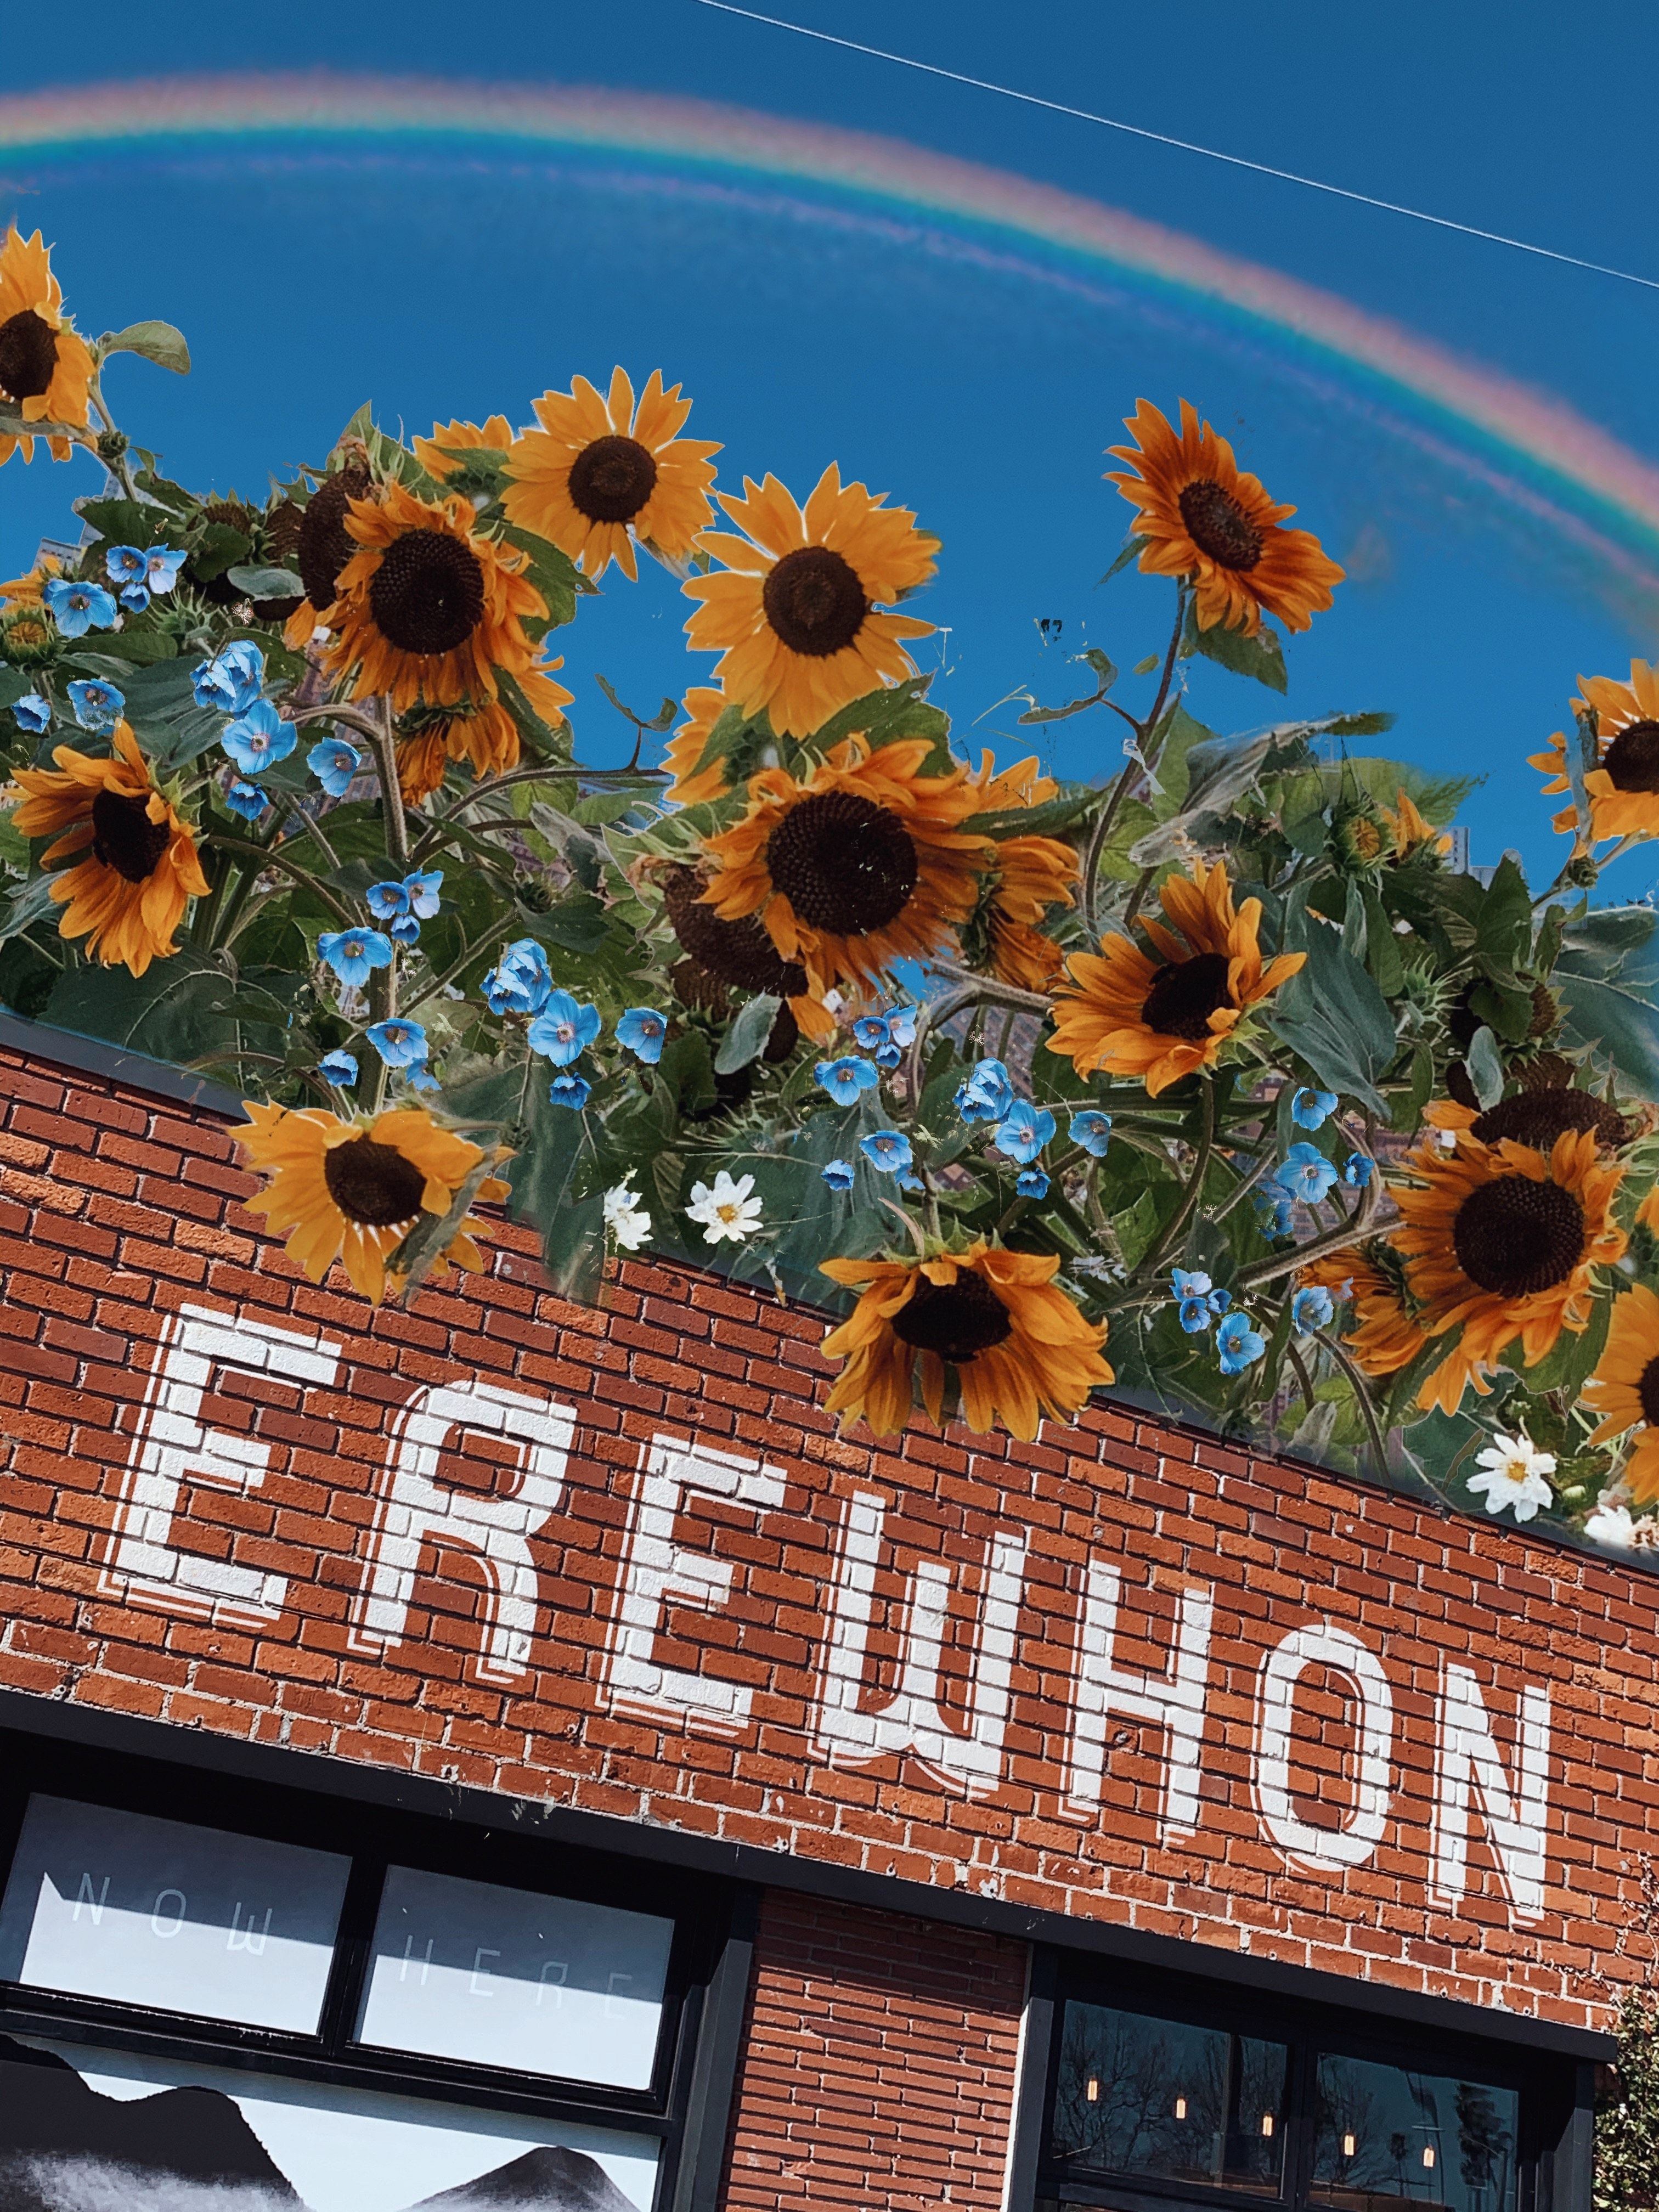 Erewhon Venice with sunflowers